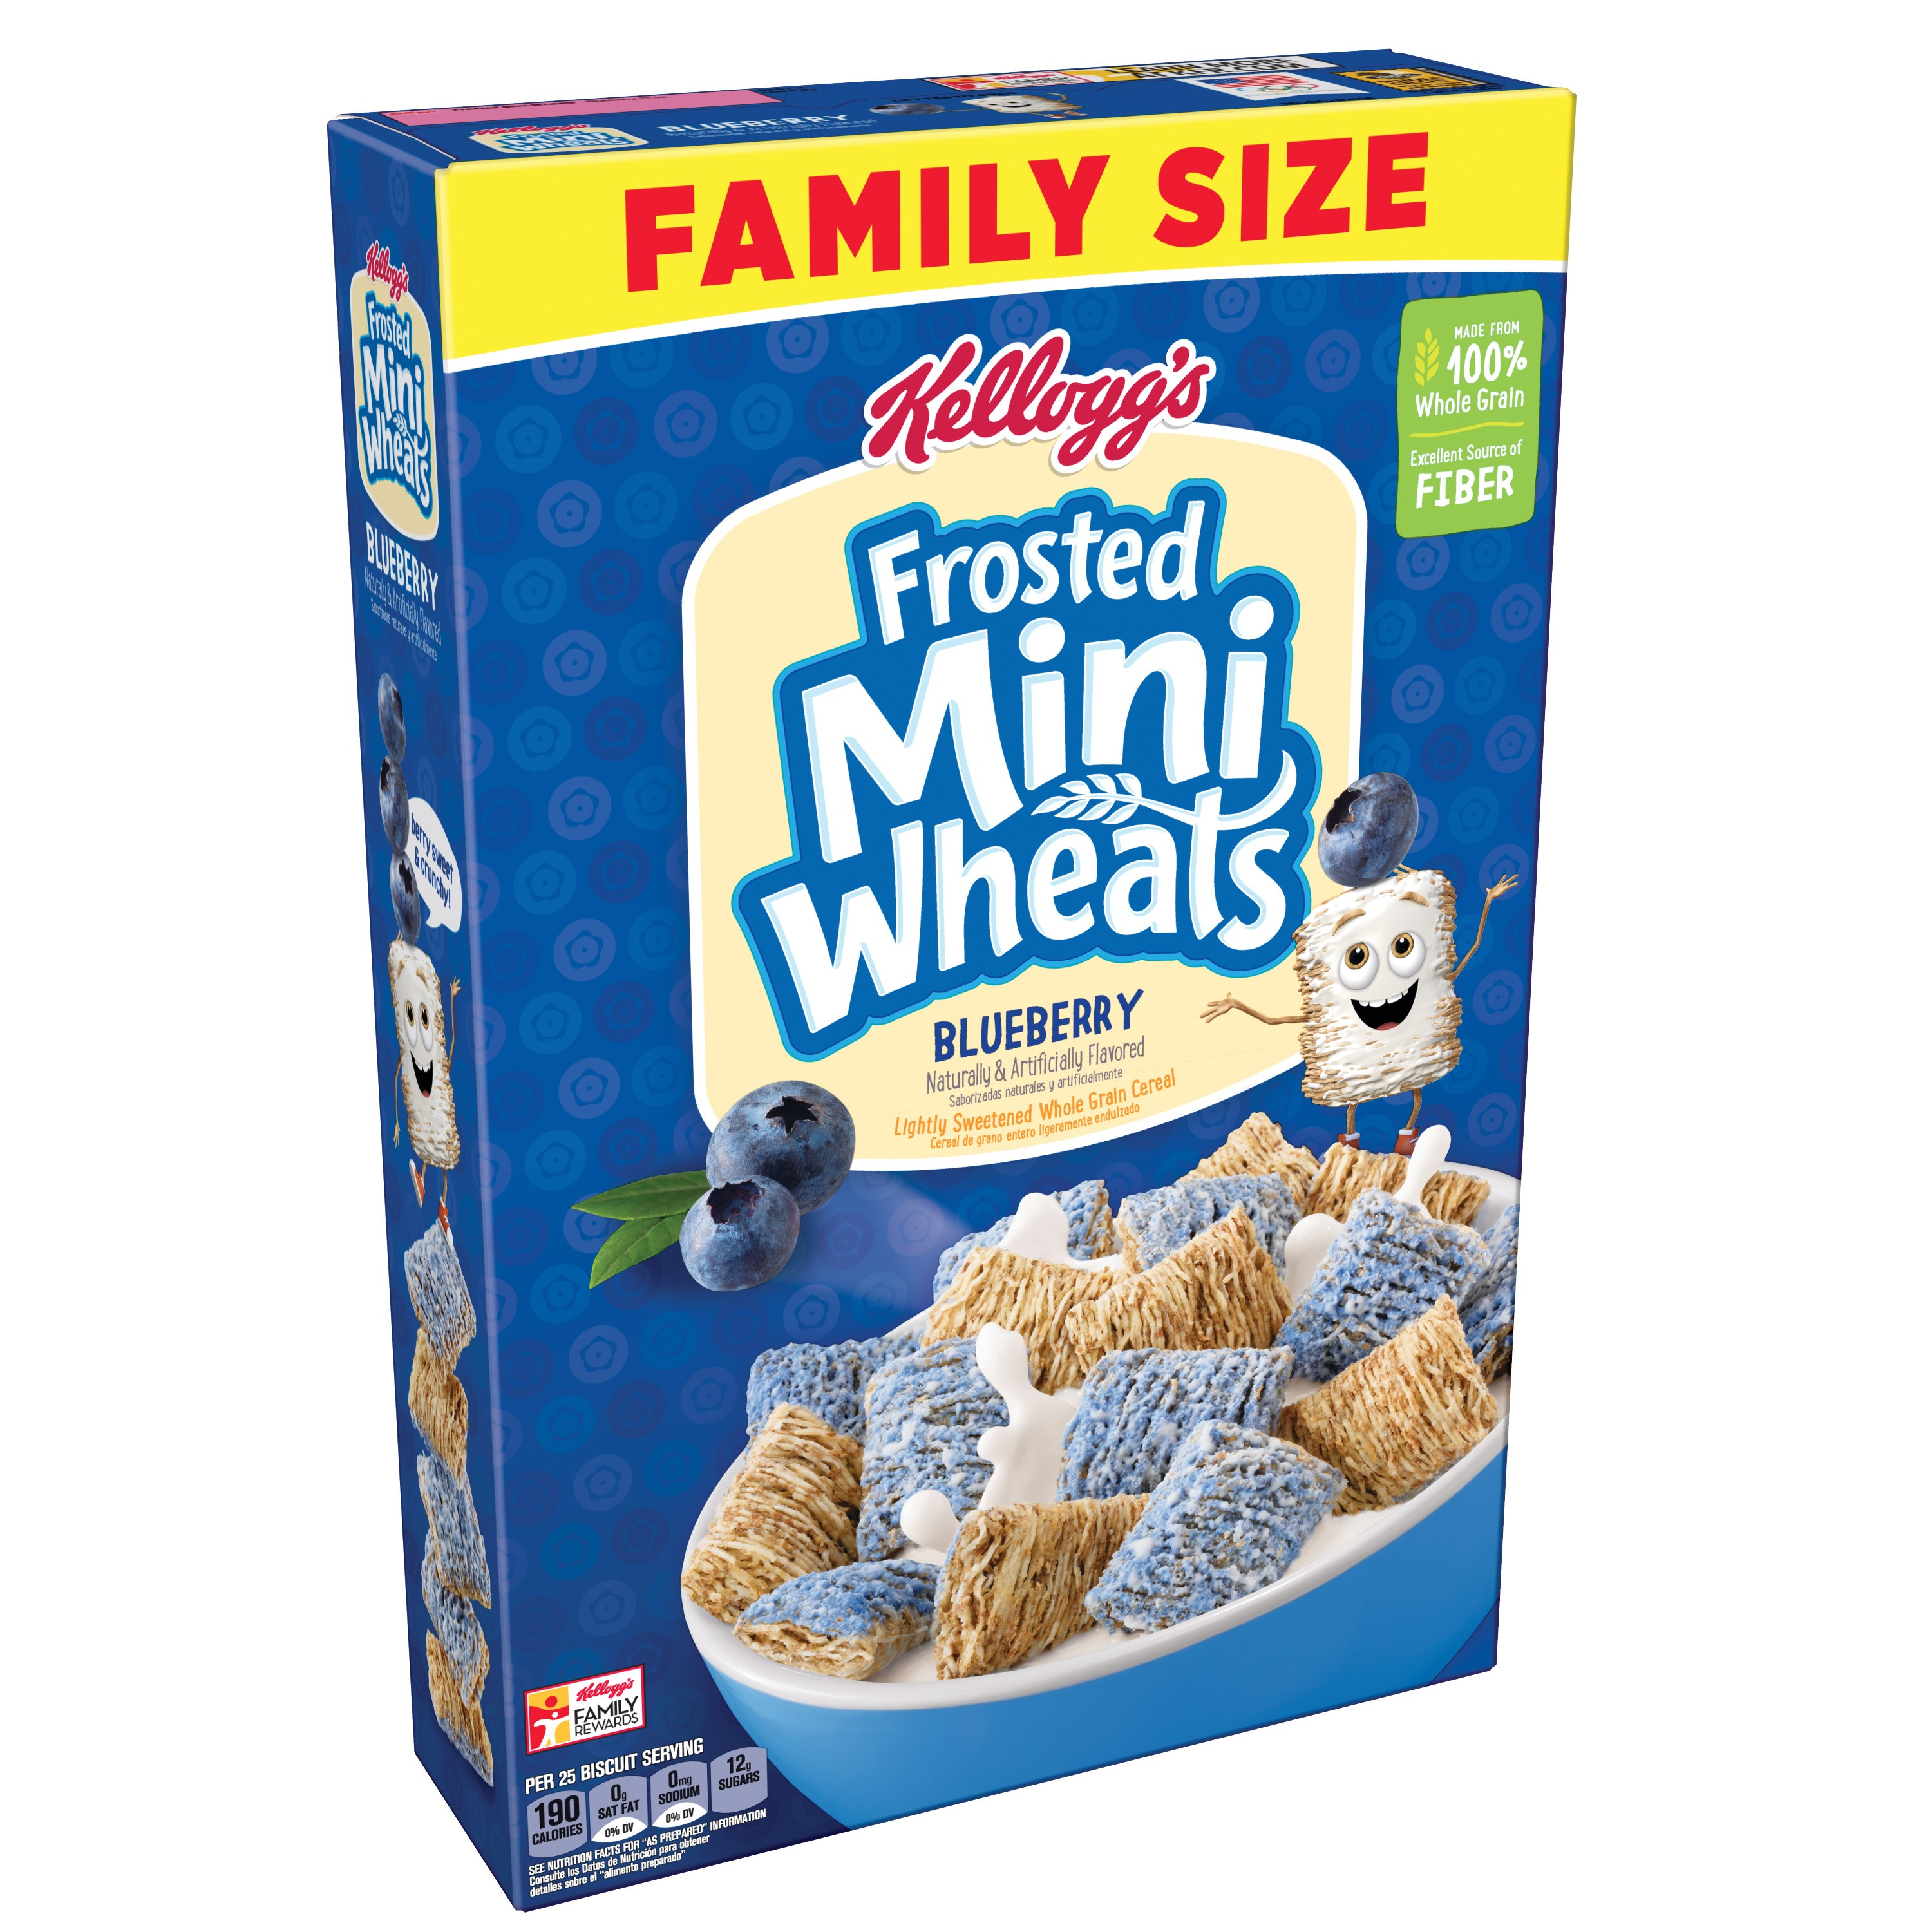 (2 Pack) Kellogg's Frosted Mini Wheats Breakfast Cereal, Blueberry, 21 Oz